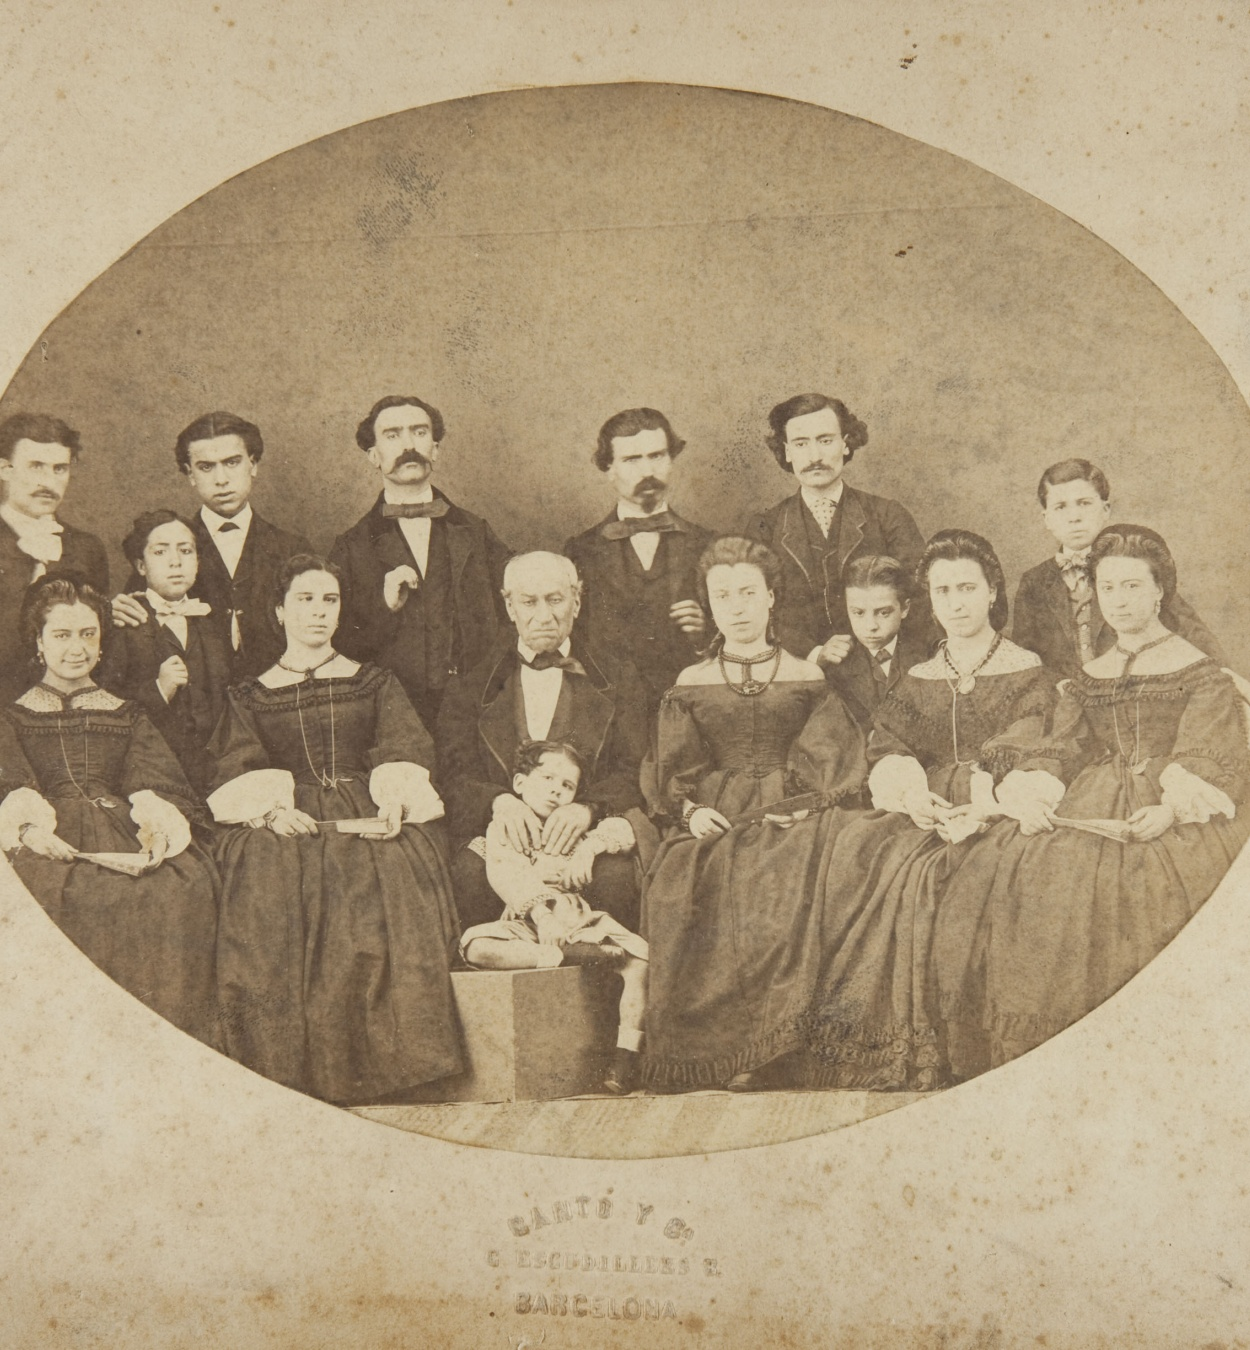 Cantó y Cía. Barcelona - Family portrait - Undated